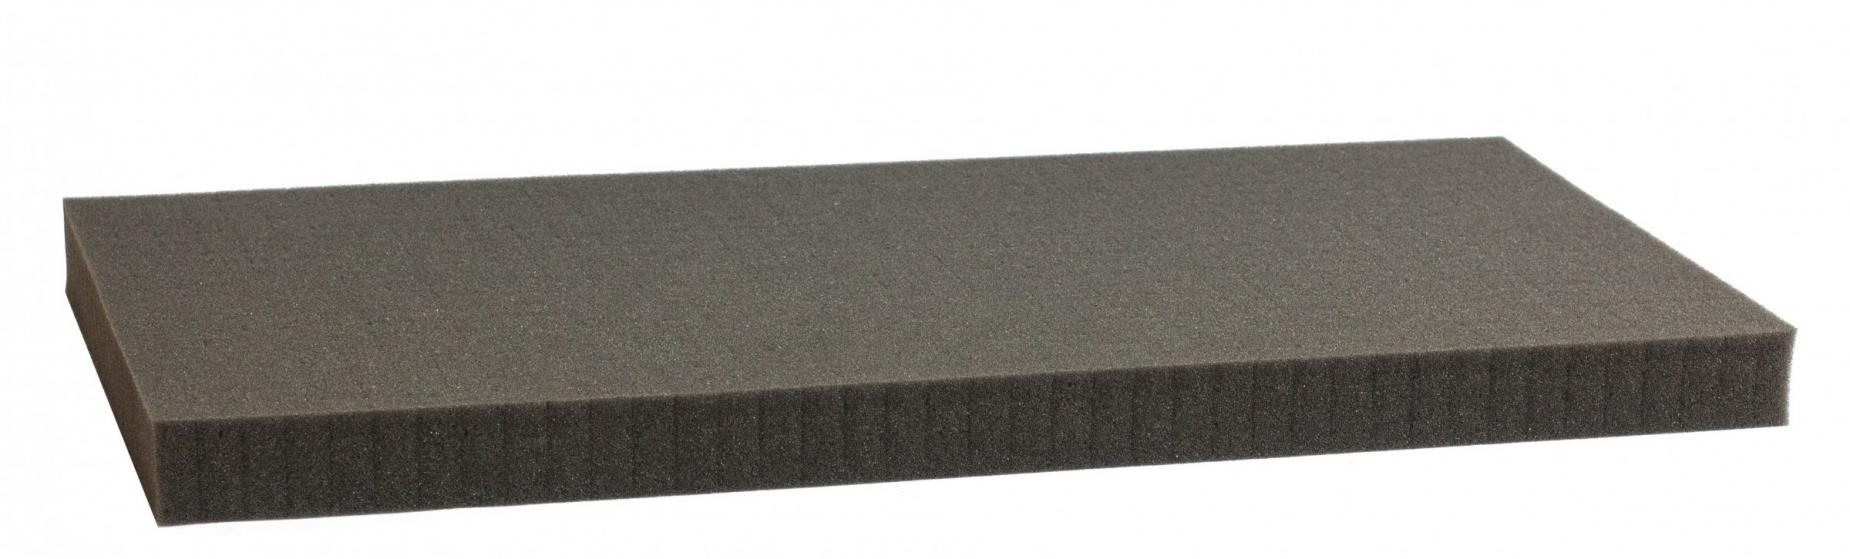 600 mm x 400 mm x 30 mm - Raster 15 mm - Pick and Pluck / Pre-Cubed foam tray